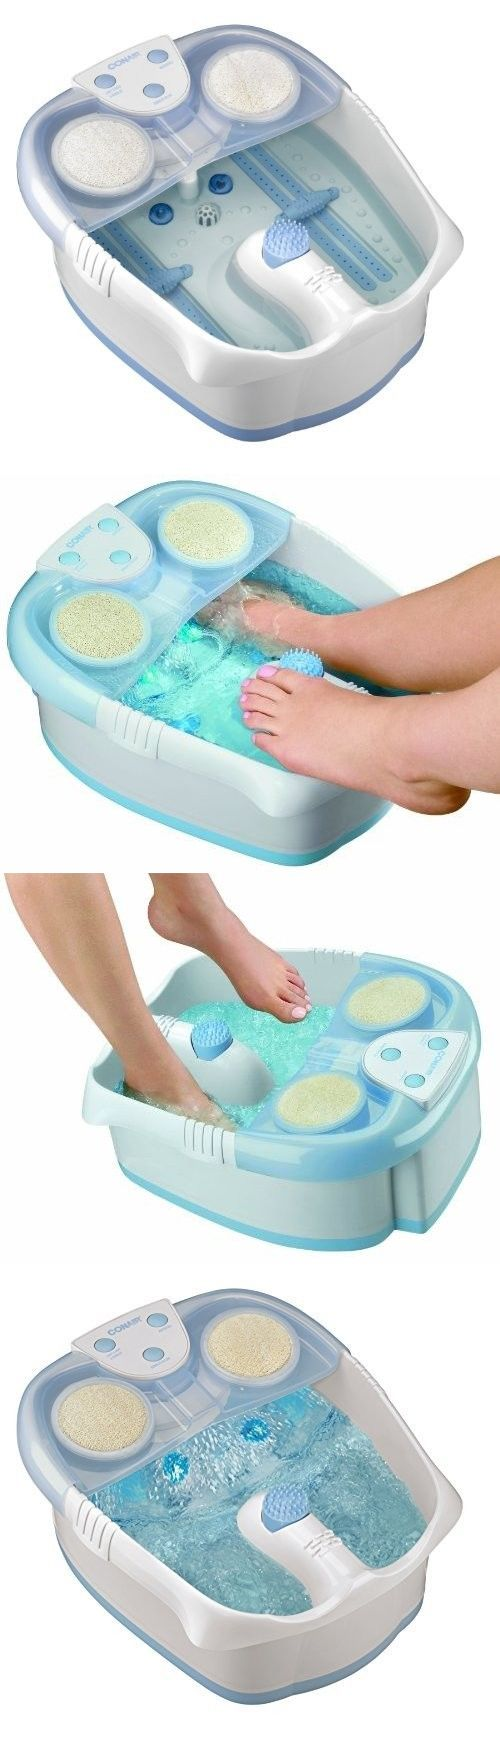 Spas Baths and Supplies: Foot Spa Massager Conair Tub Bath Pedicure Bubbles Heat Lights Therapy Room BUY IT NOW ONLY: $49.87